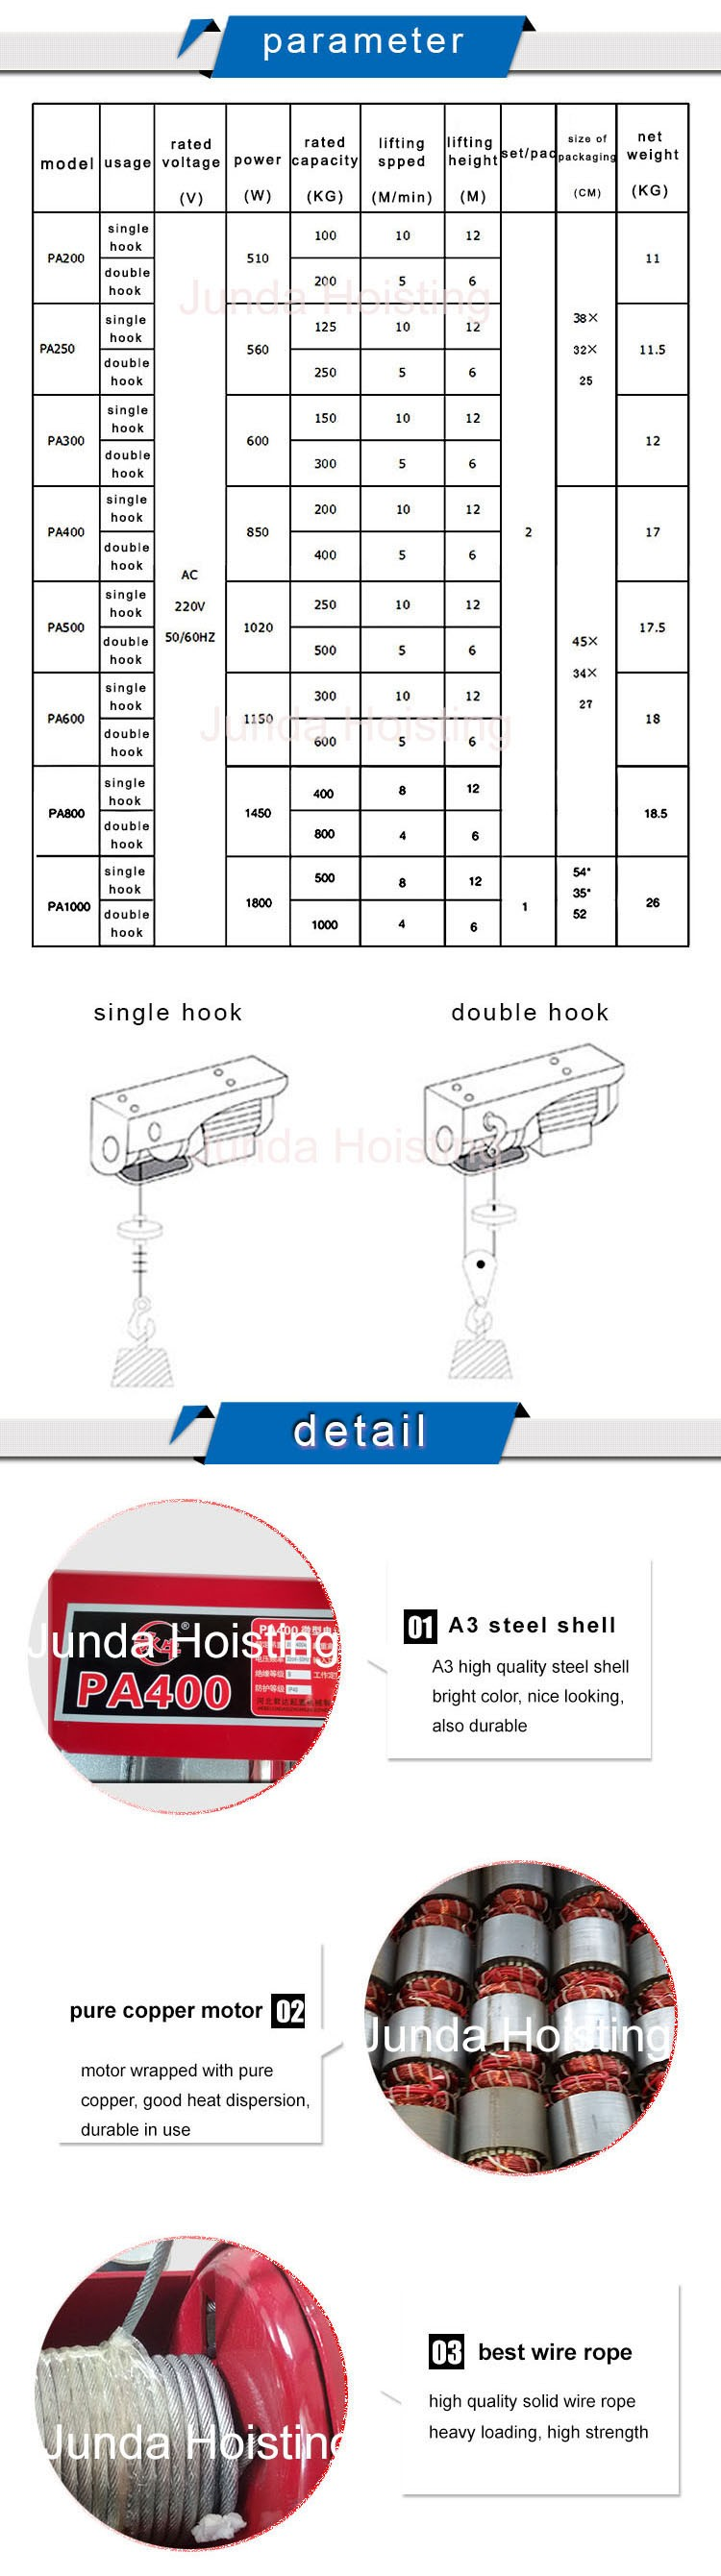 HTB1H6thMpXXXXboaXXXq6xXFXXXg mini small pa electric motor wire rope lift hoist pa200 pa300  at crackthecode.co